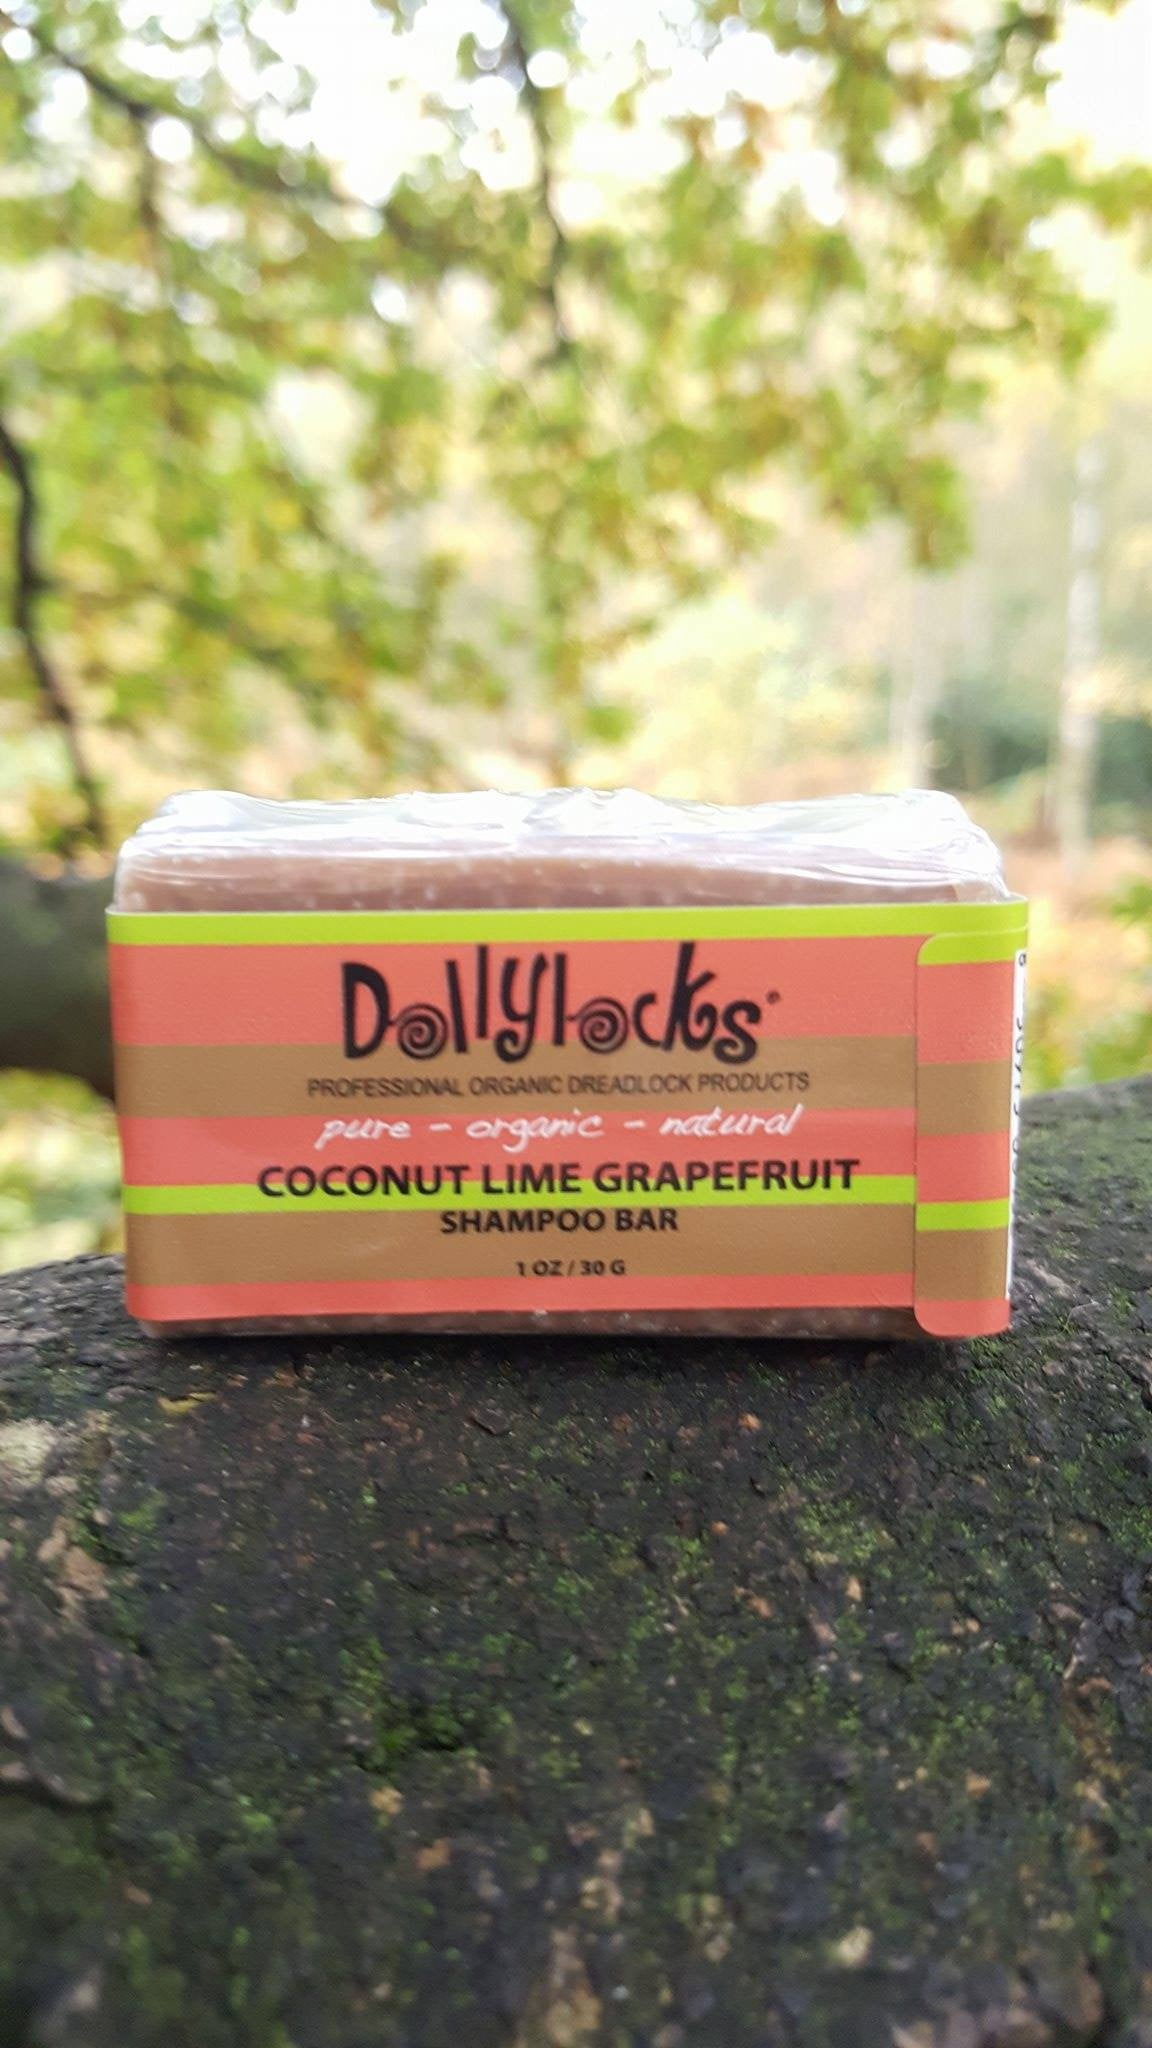 Dollylocks Dreadlocks Shampoo Bar Coconut Lime Grapefruit 1.25oz/Travel Size